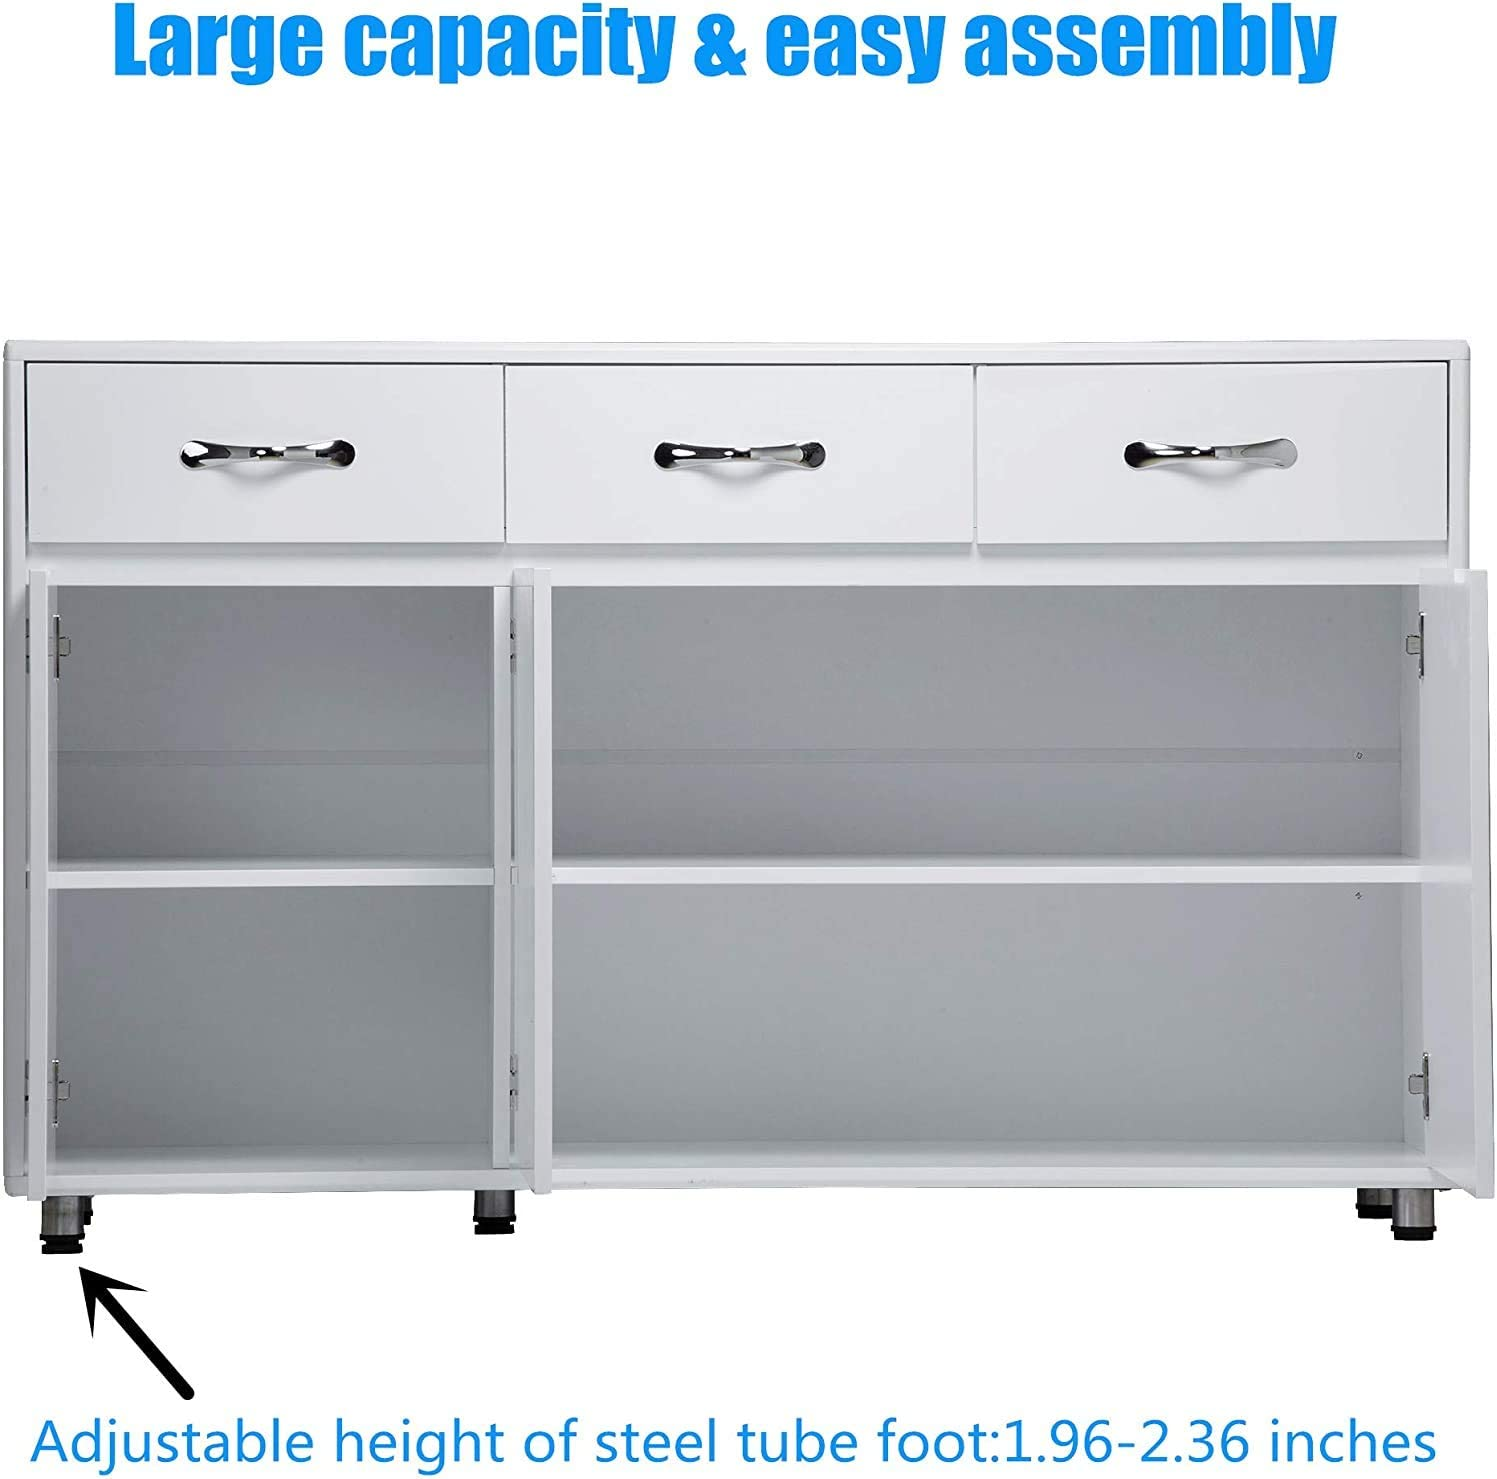 Aooppec Upgraded Thicken Sideboard Buffet Storage Cabinet Three Doors Side Cabinet For Entryway Cupboard With 2 Cabinets 3 Drawers Shelves For Home Office Kitchen Dining Room Grey